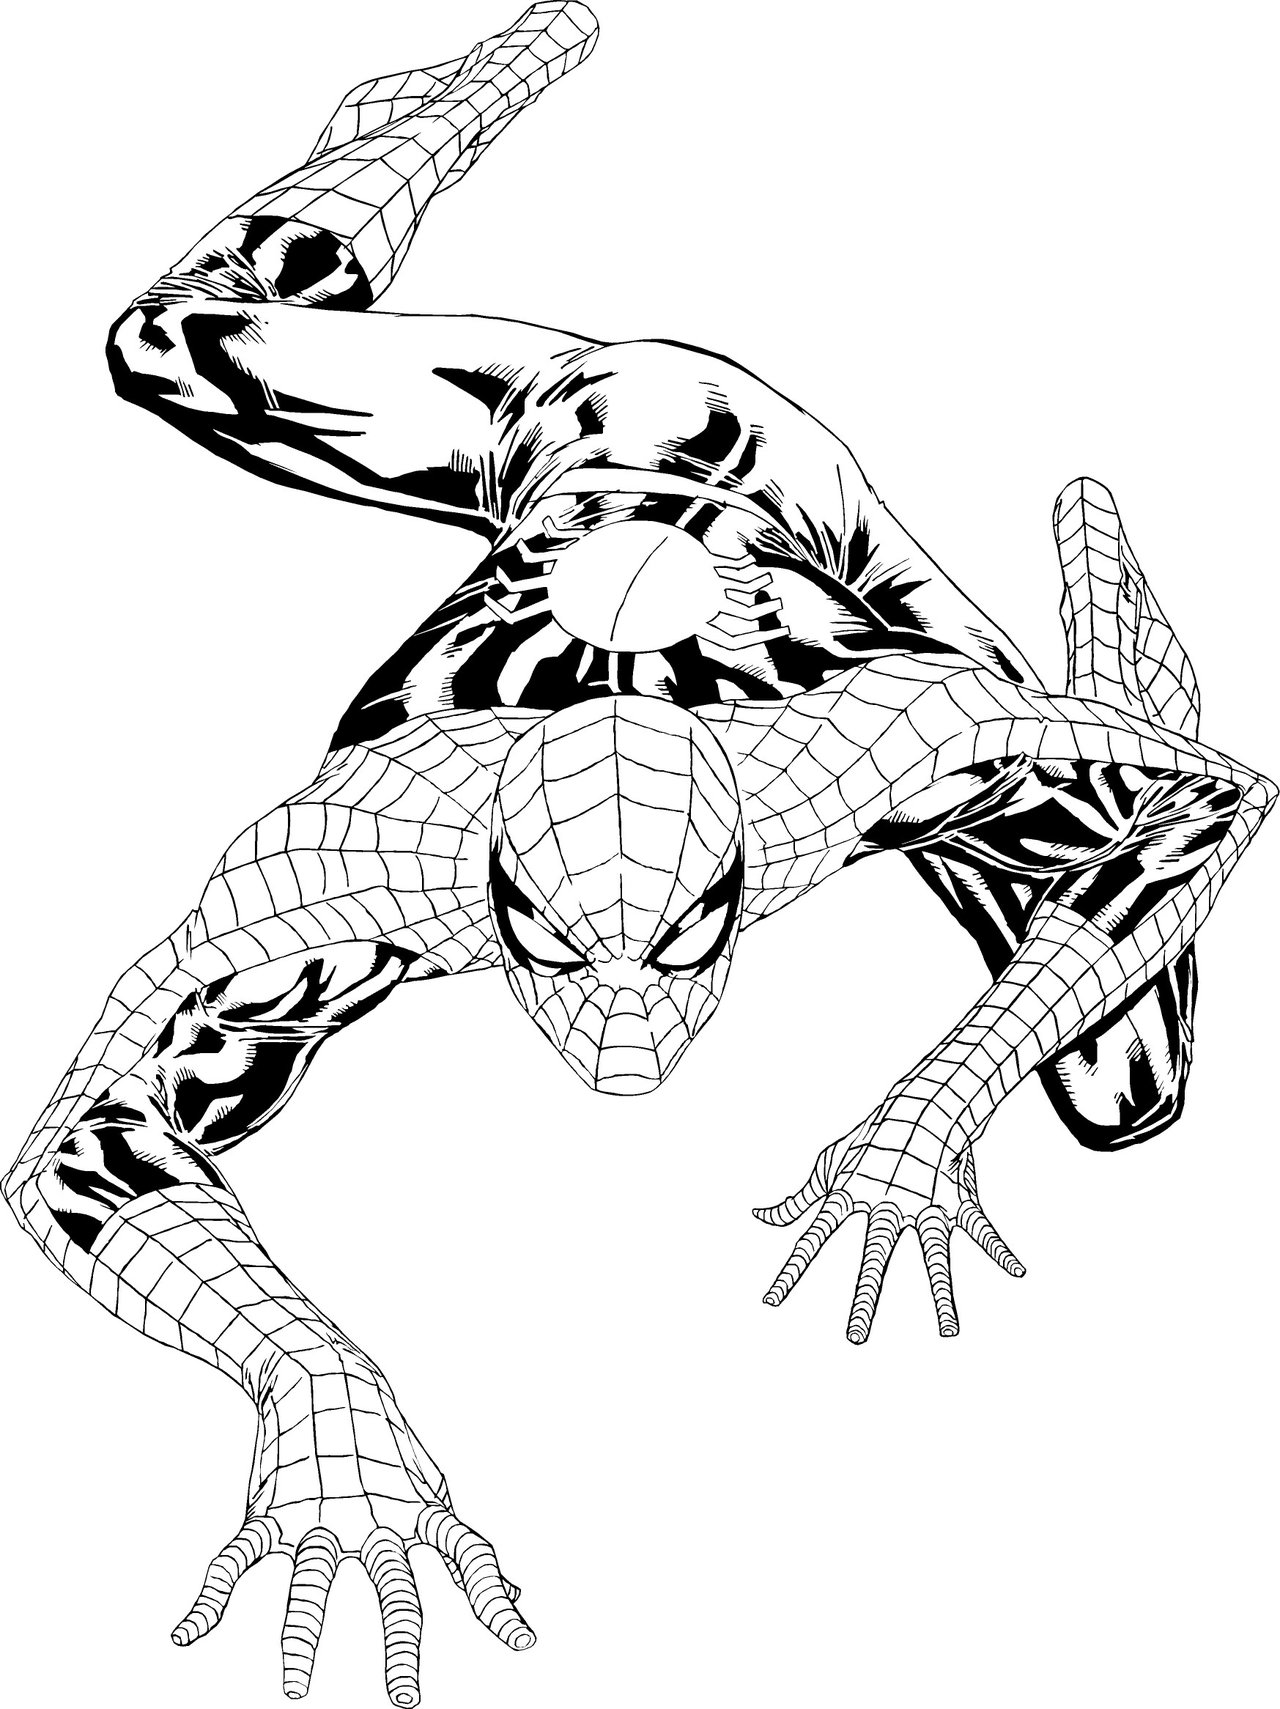 kids coloring pages spiderman | Sketches Of Spider Man Logo Coloring Pages